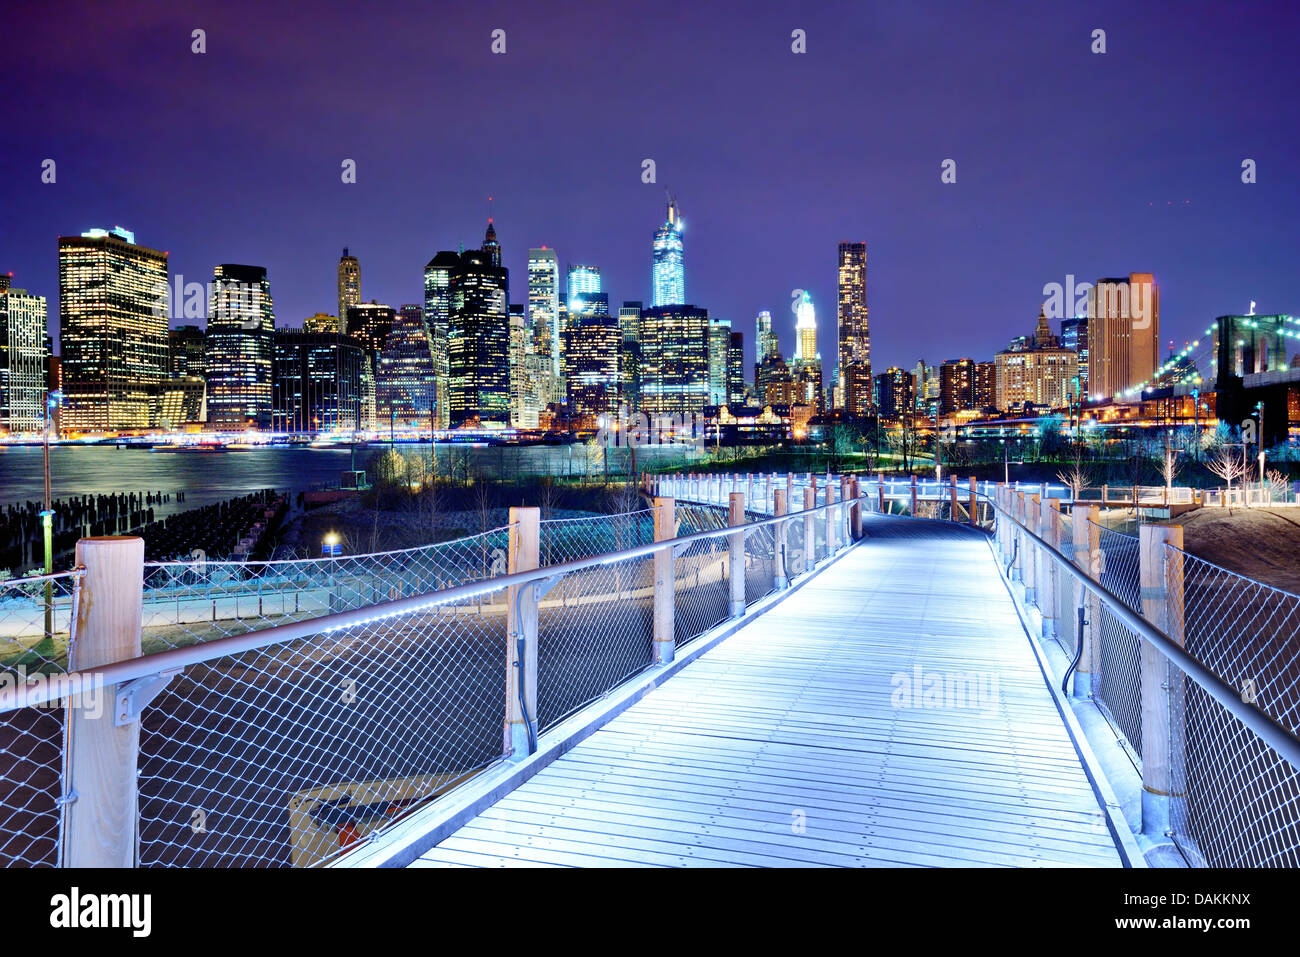 Lower Manhattan skyline visto desde Brooklyn en Nueva York. Imagen De Stock